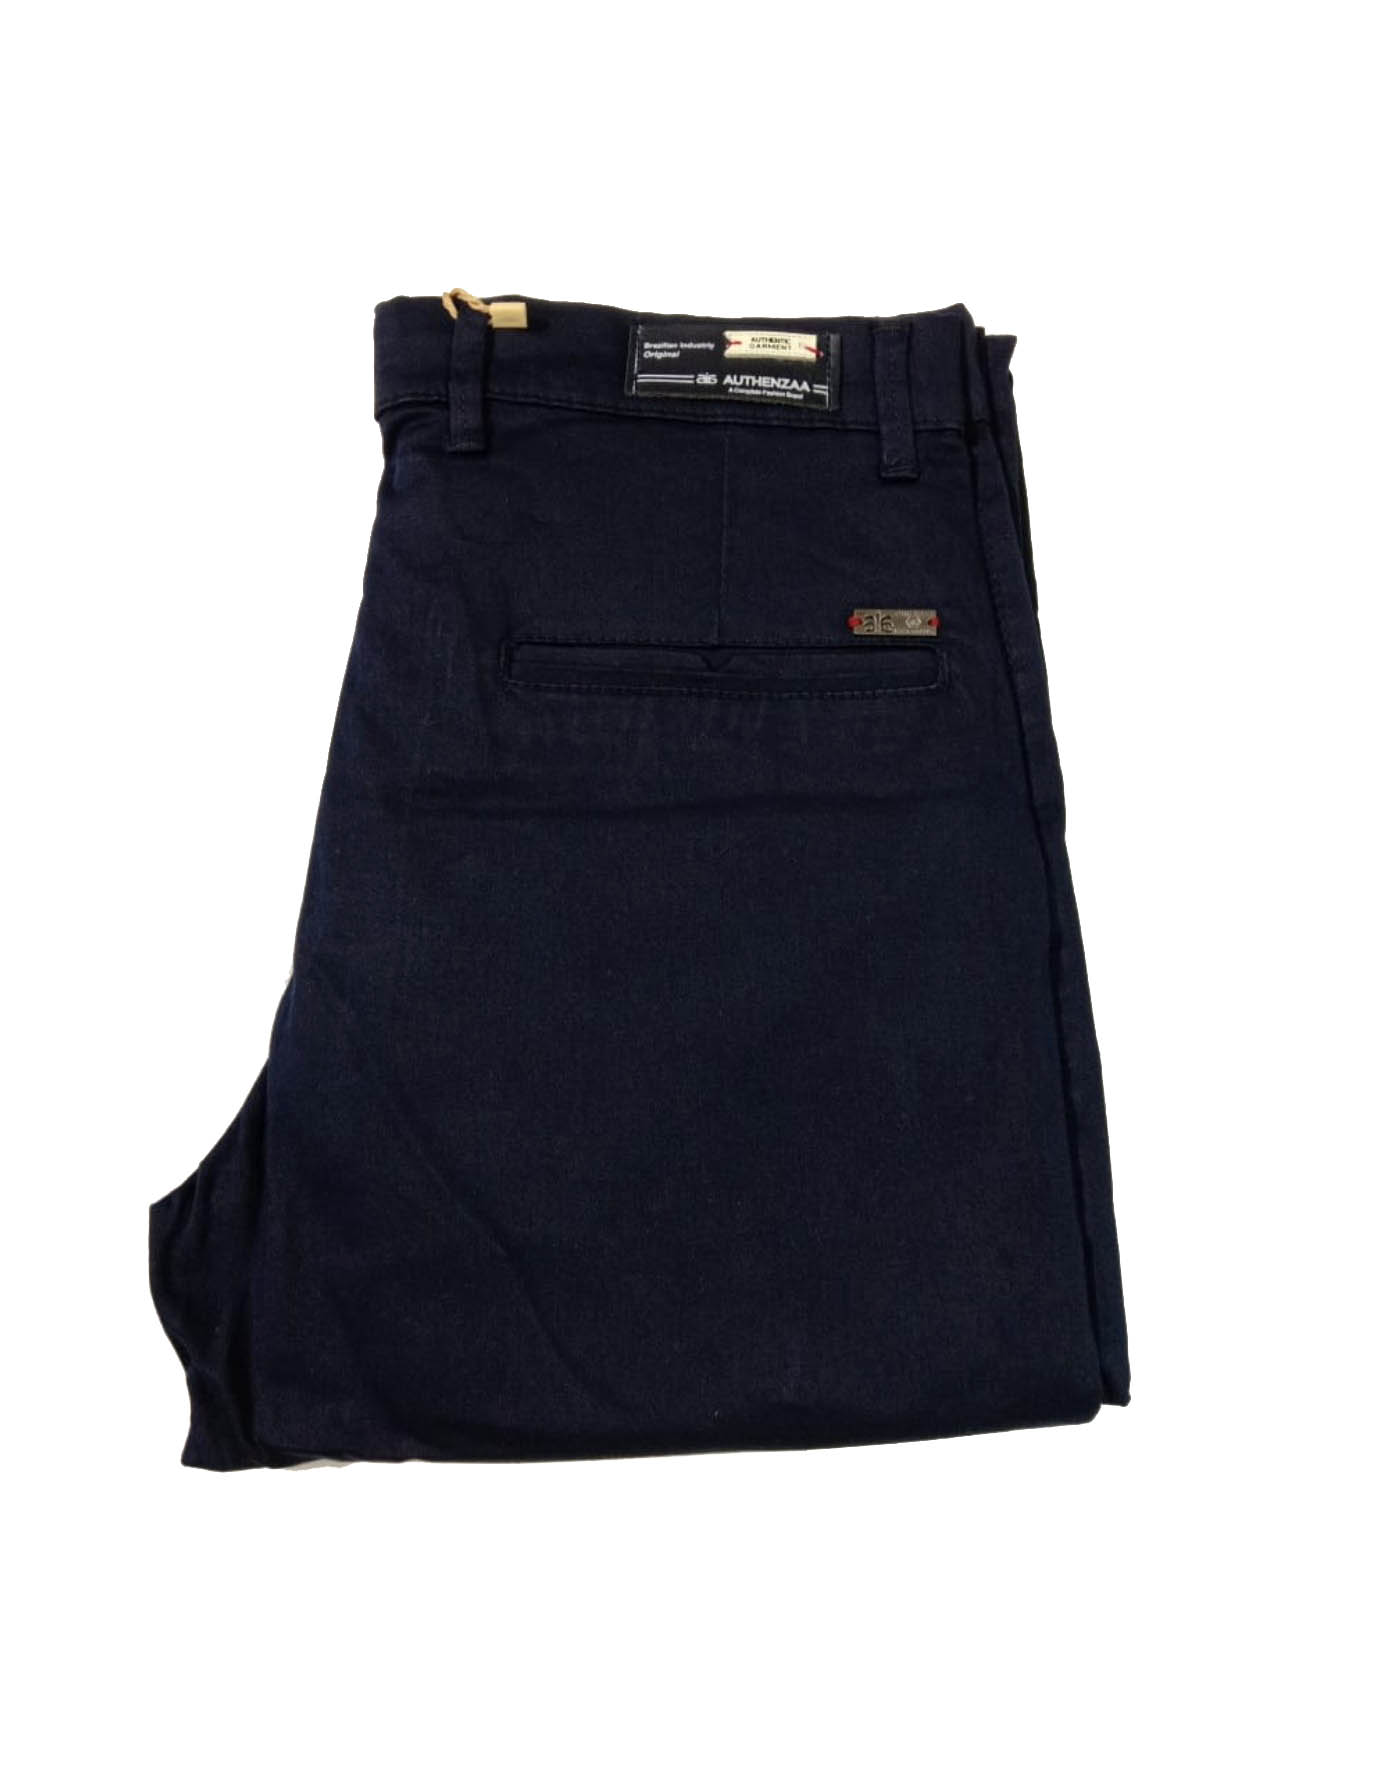 UTD SEP SATIN 03 2019-NAVY BLUE MEN CASUAL TROUSER